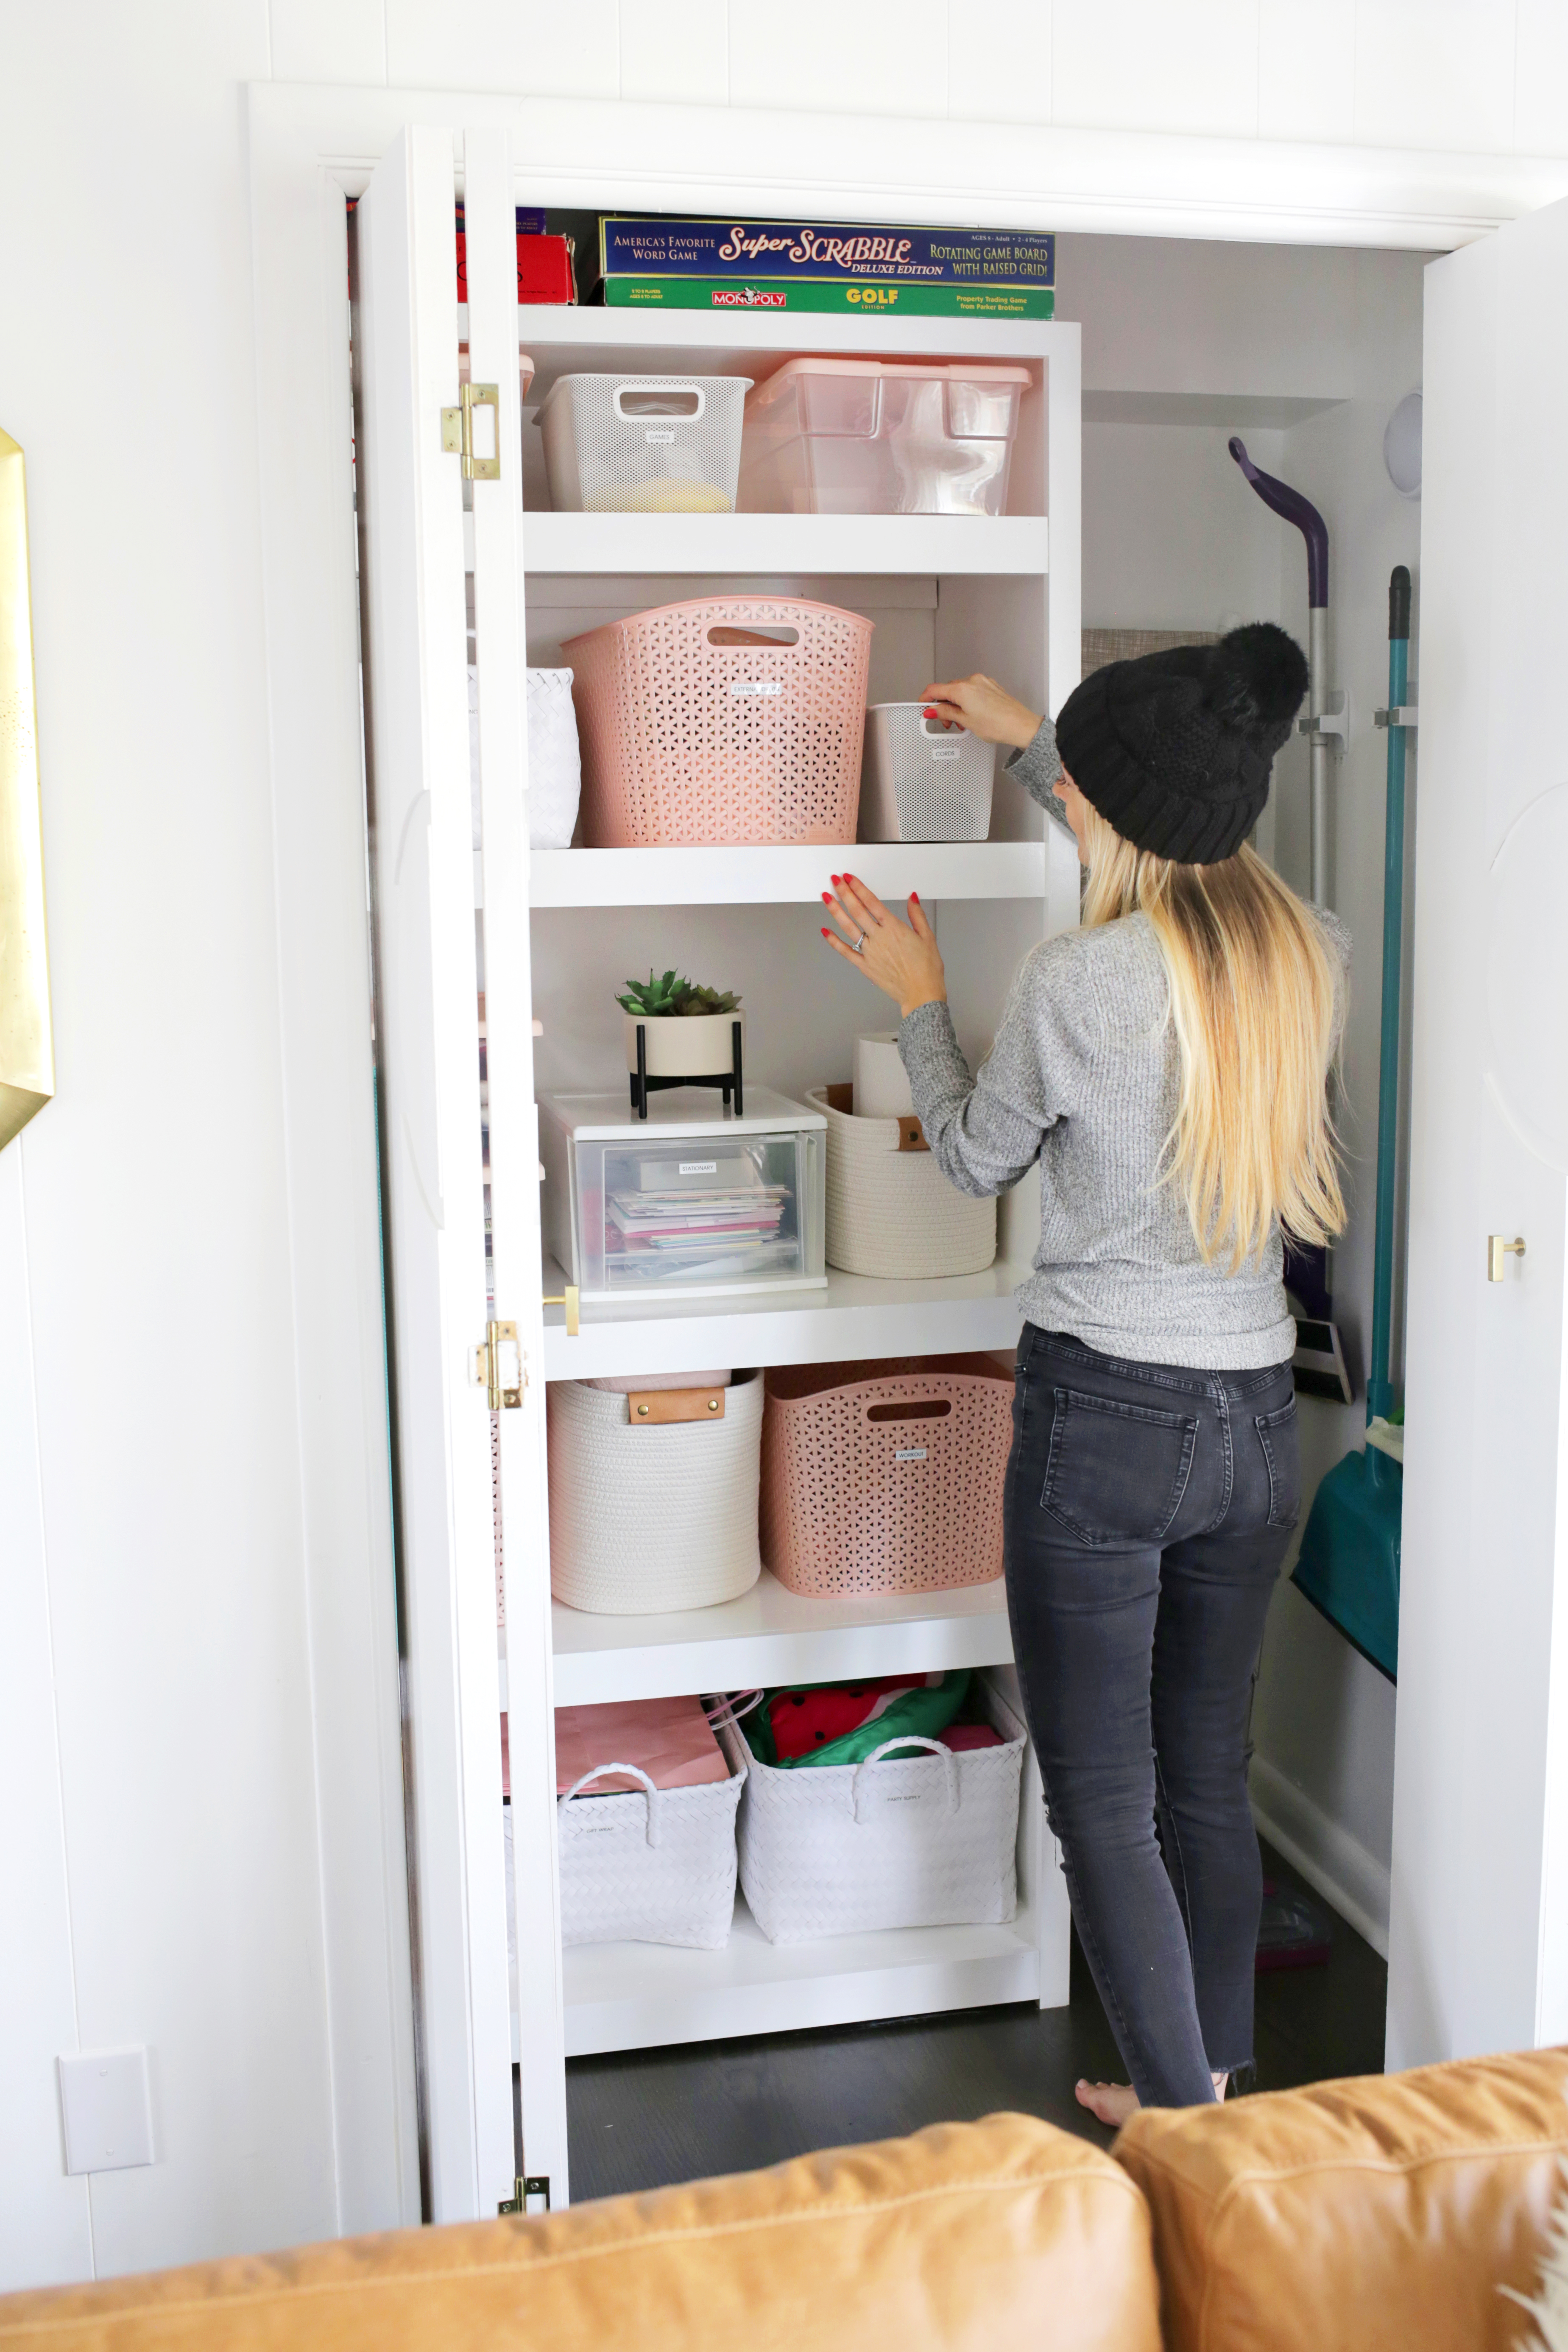 Our Favorite Organization Items (To Get Your Life In Order!)